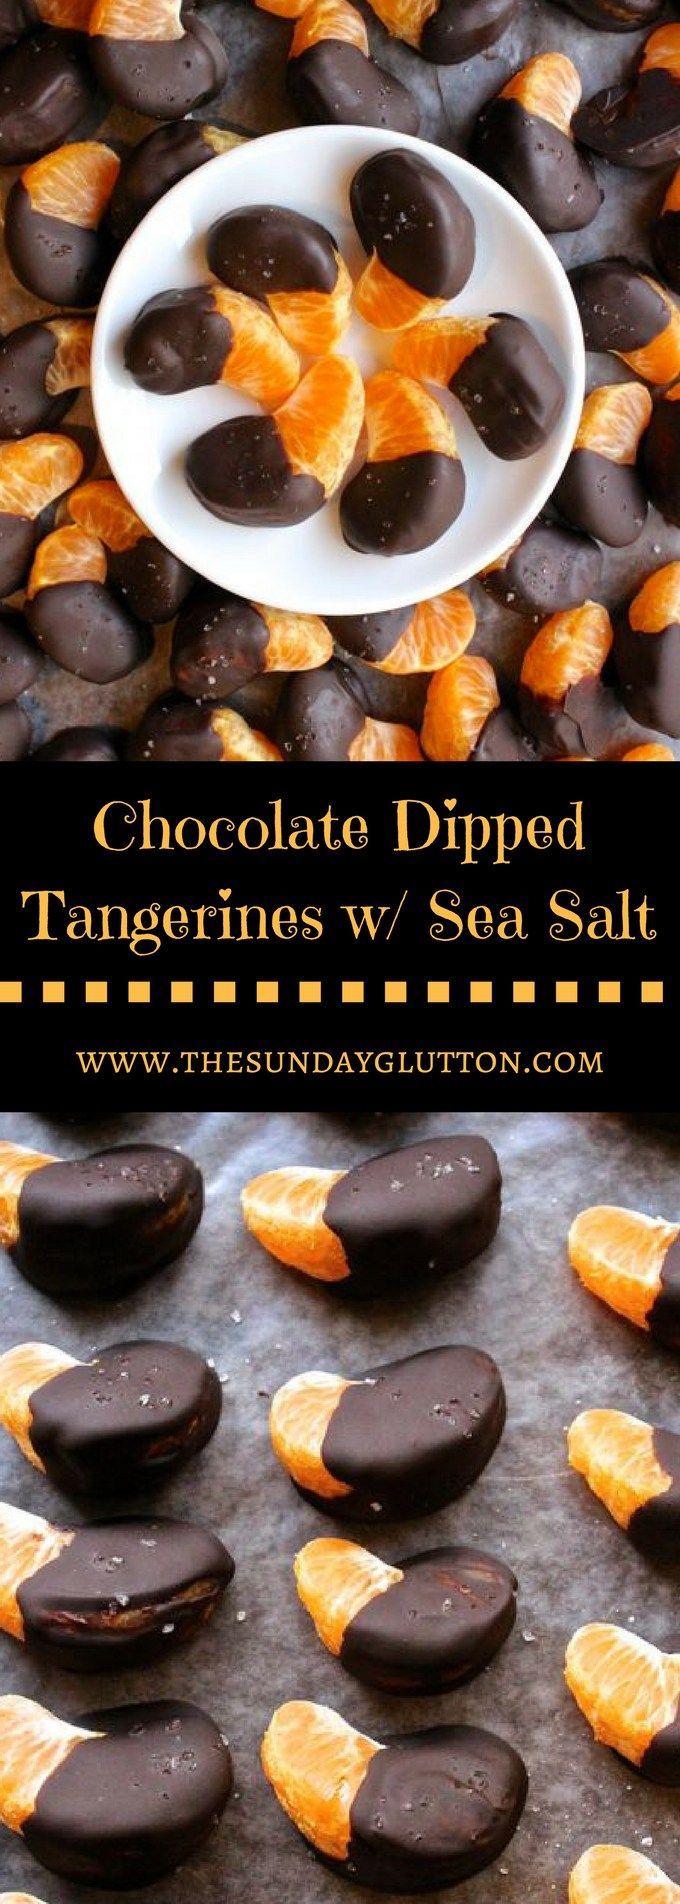 Chocolate Dipped Tangerines, finished with a little sea salt, are a quick, easy and elegant dessert or snack. They require less than 5 ingredients and less than 30 minutes of hands-on time. Sweetness from the chocolate and a little bite from finishing salt compliment the sweet and tart flavors of the tangerines. And you can't beat the presentation!